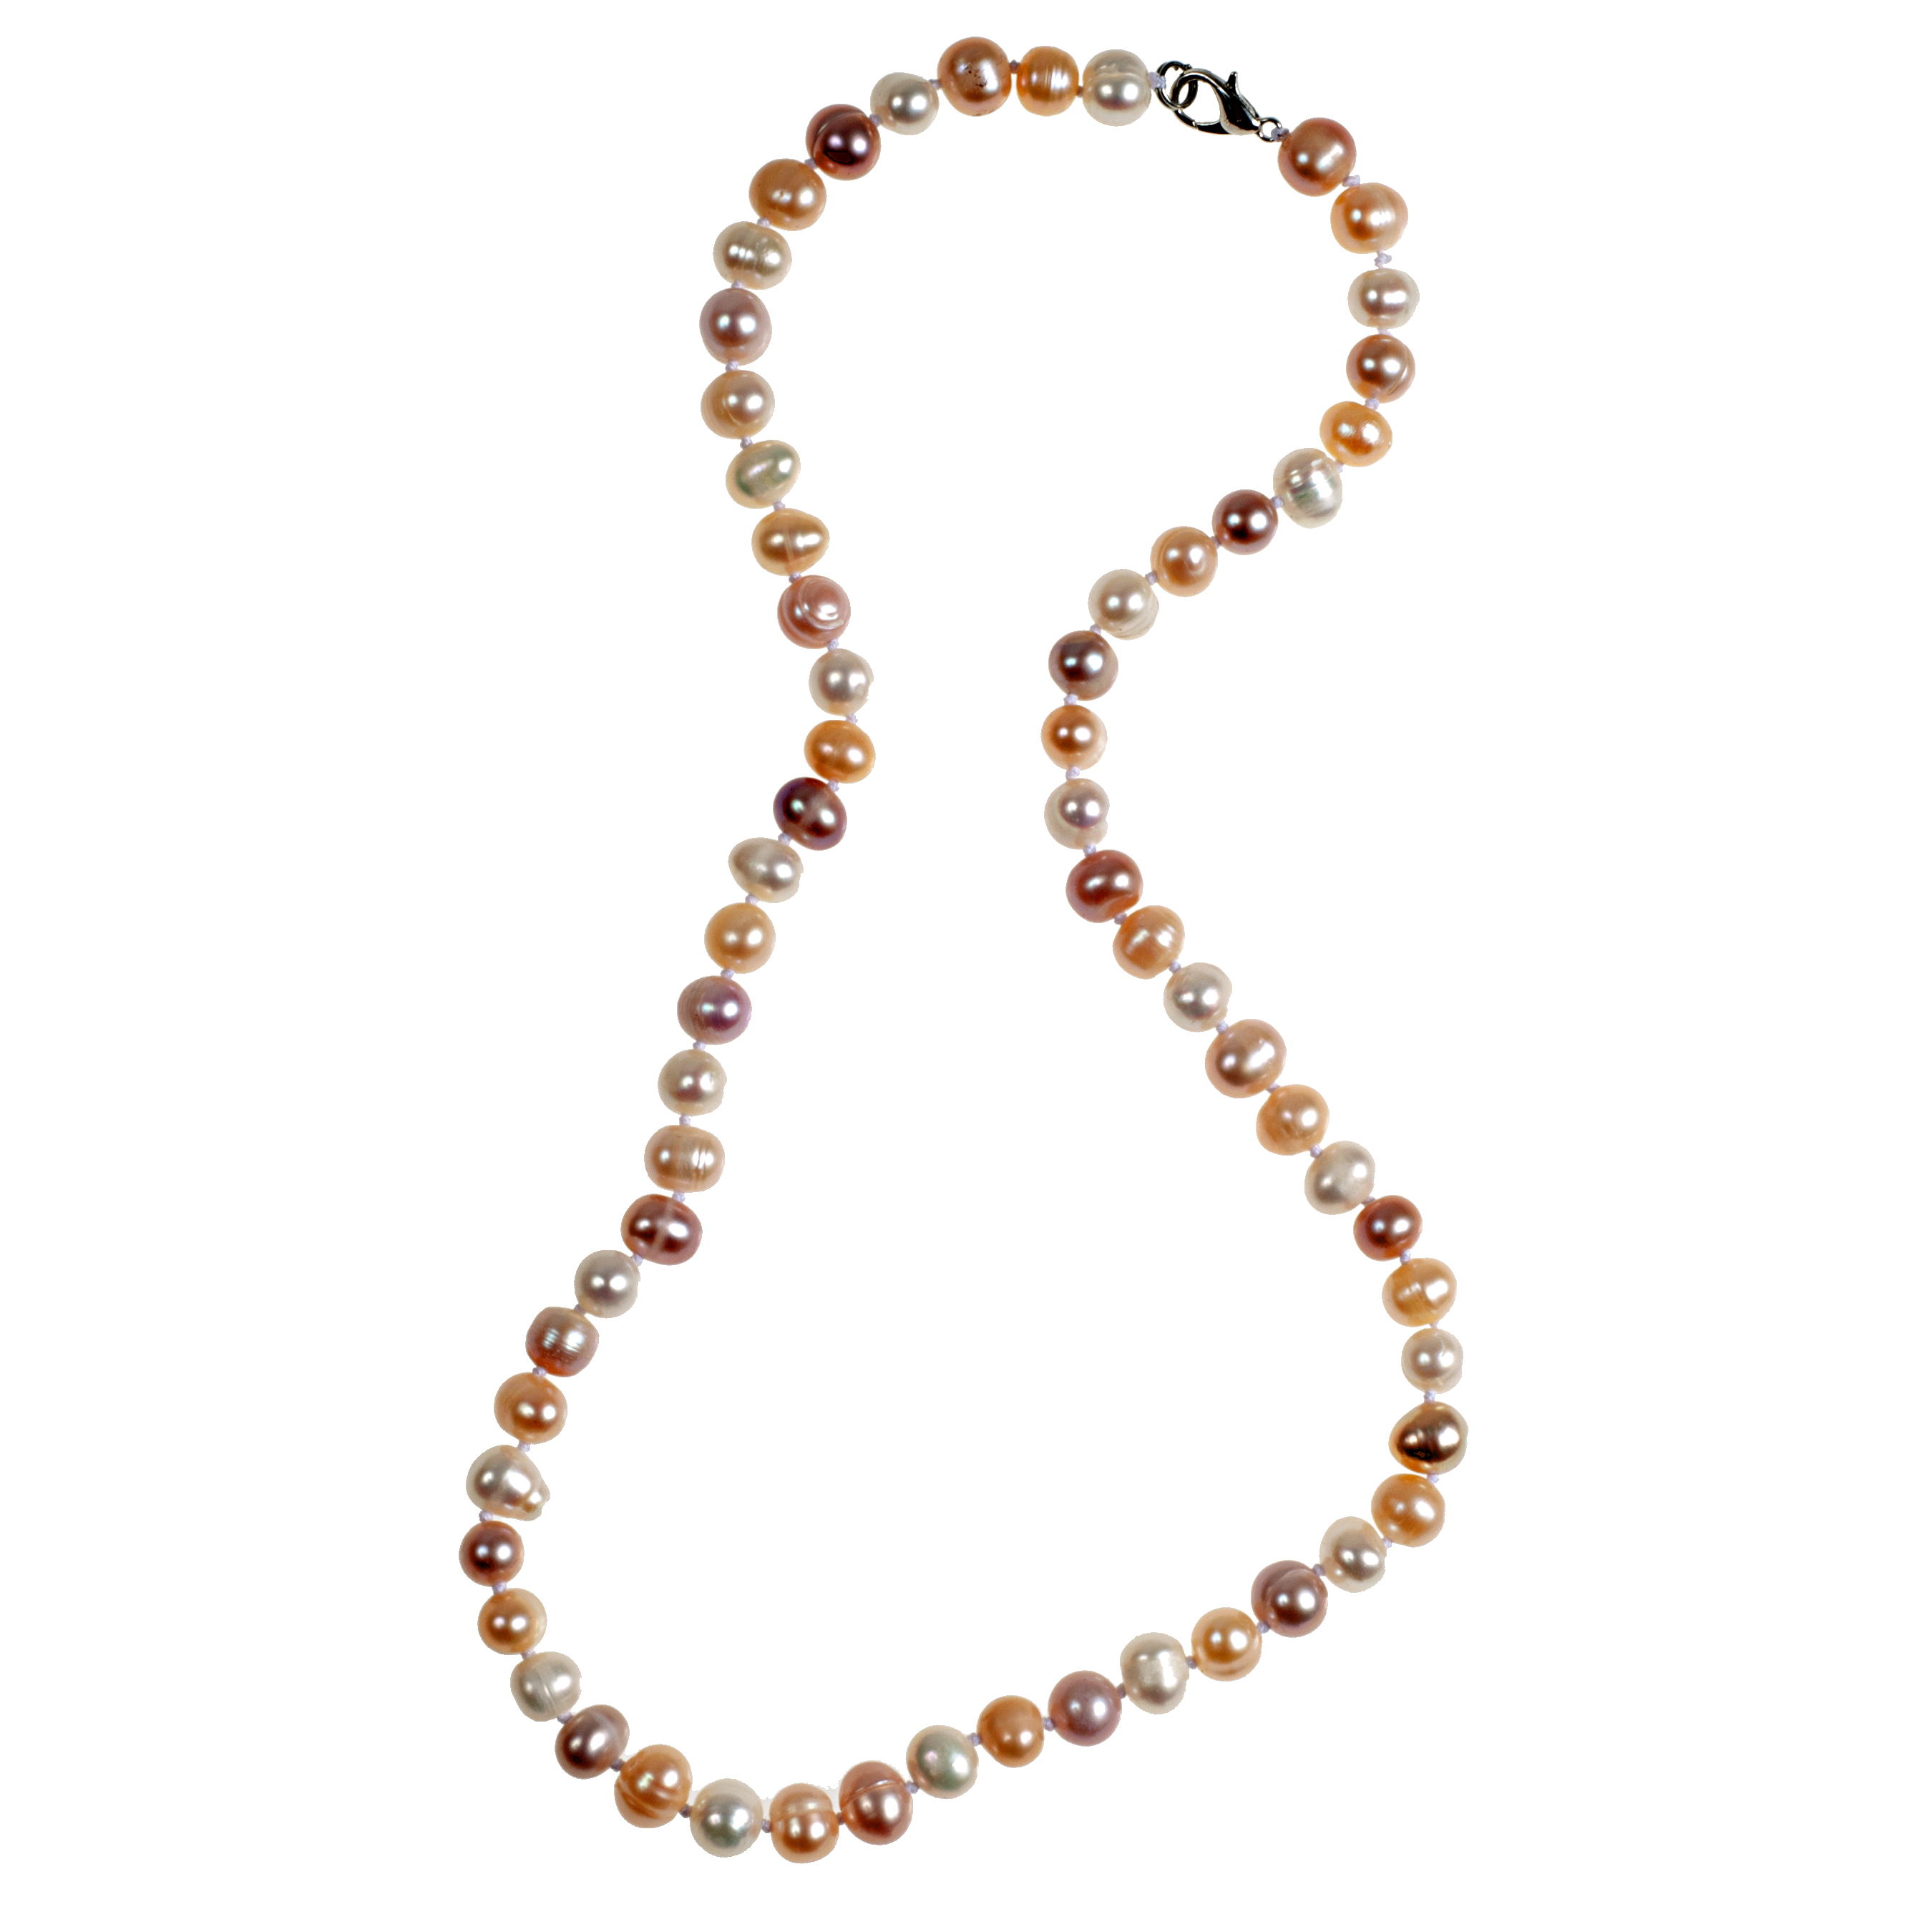 Knotted Blush-Tone Cultured Pearl Necklace - KJKStyle